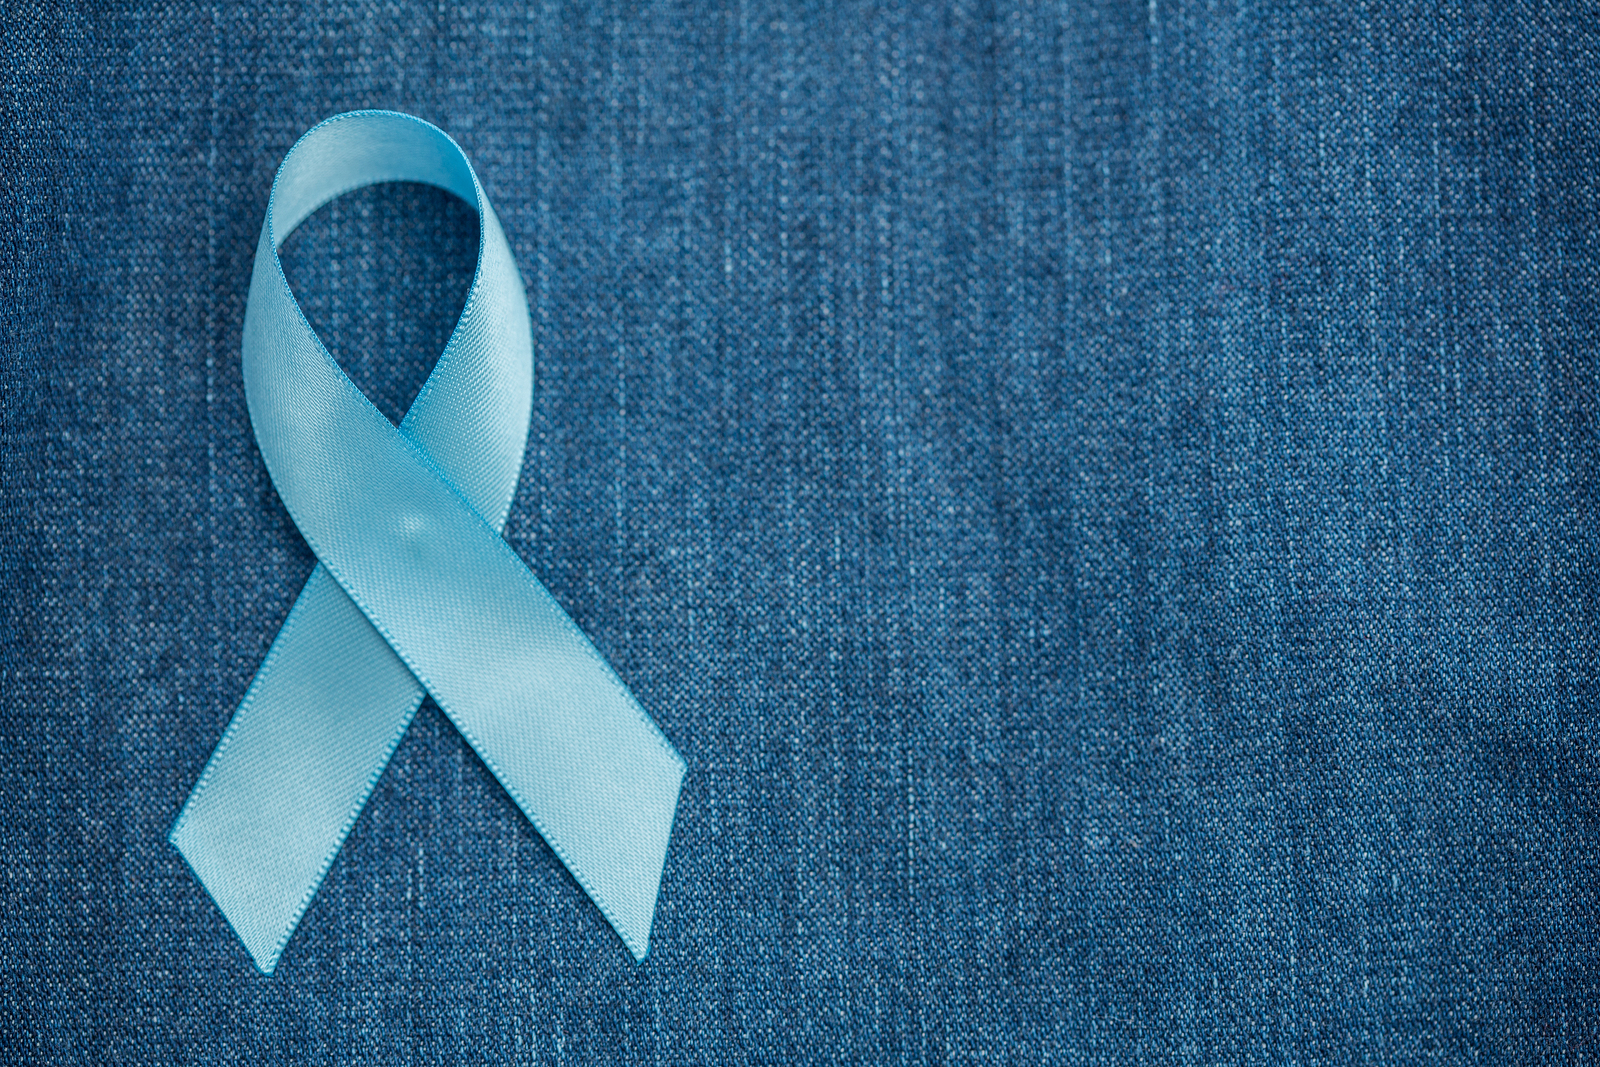 Prostate Cancer: not a good week